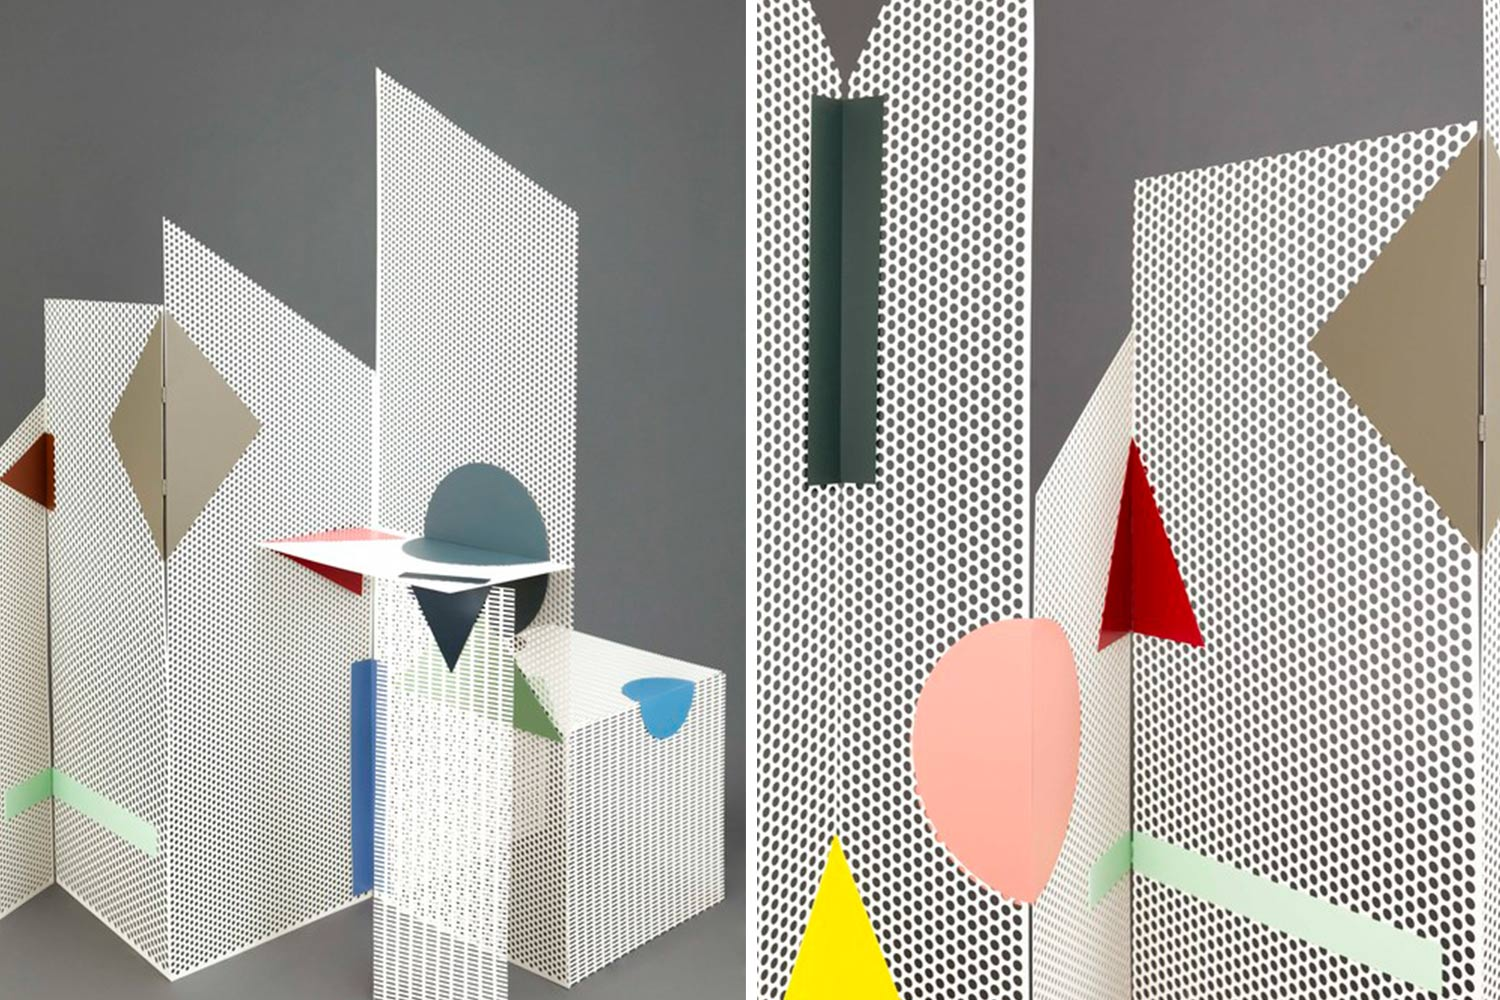 Ana Arana, room divider, Tromploeil, geometric design, playful design, Spanish design, attached with magnets,